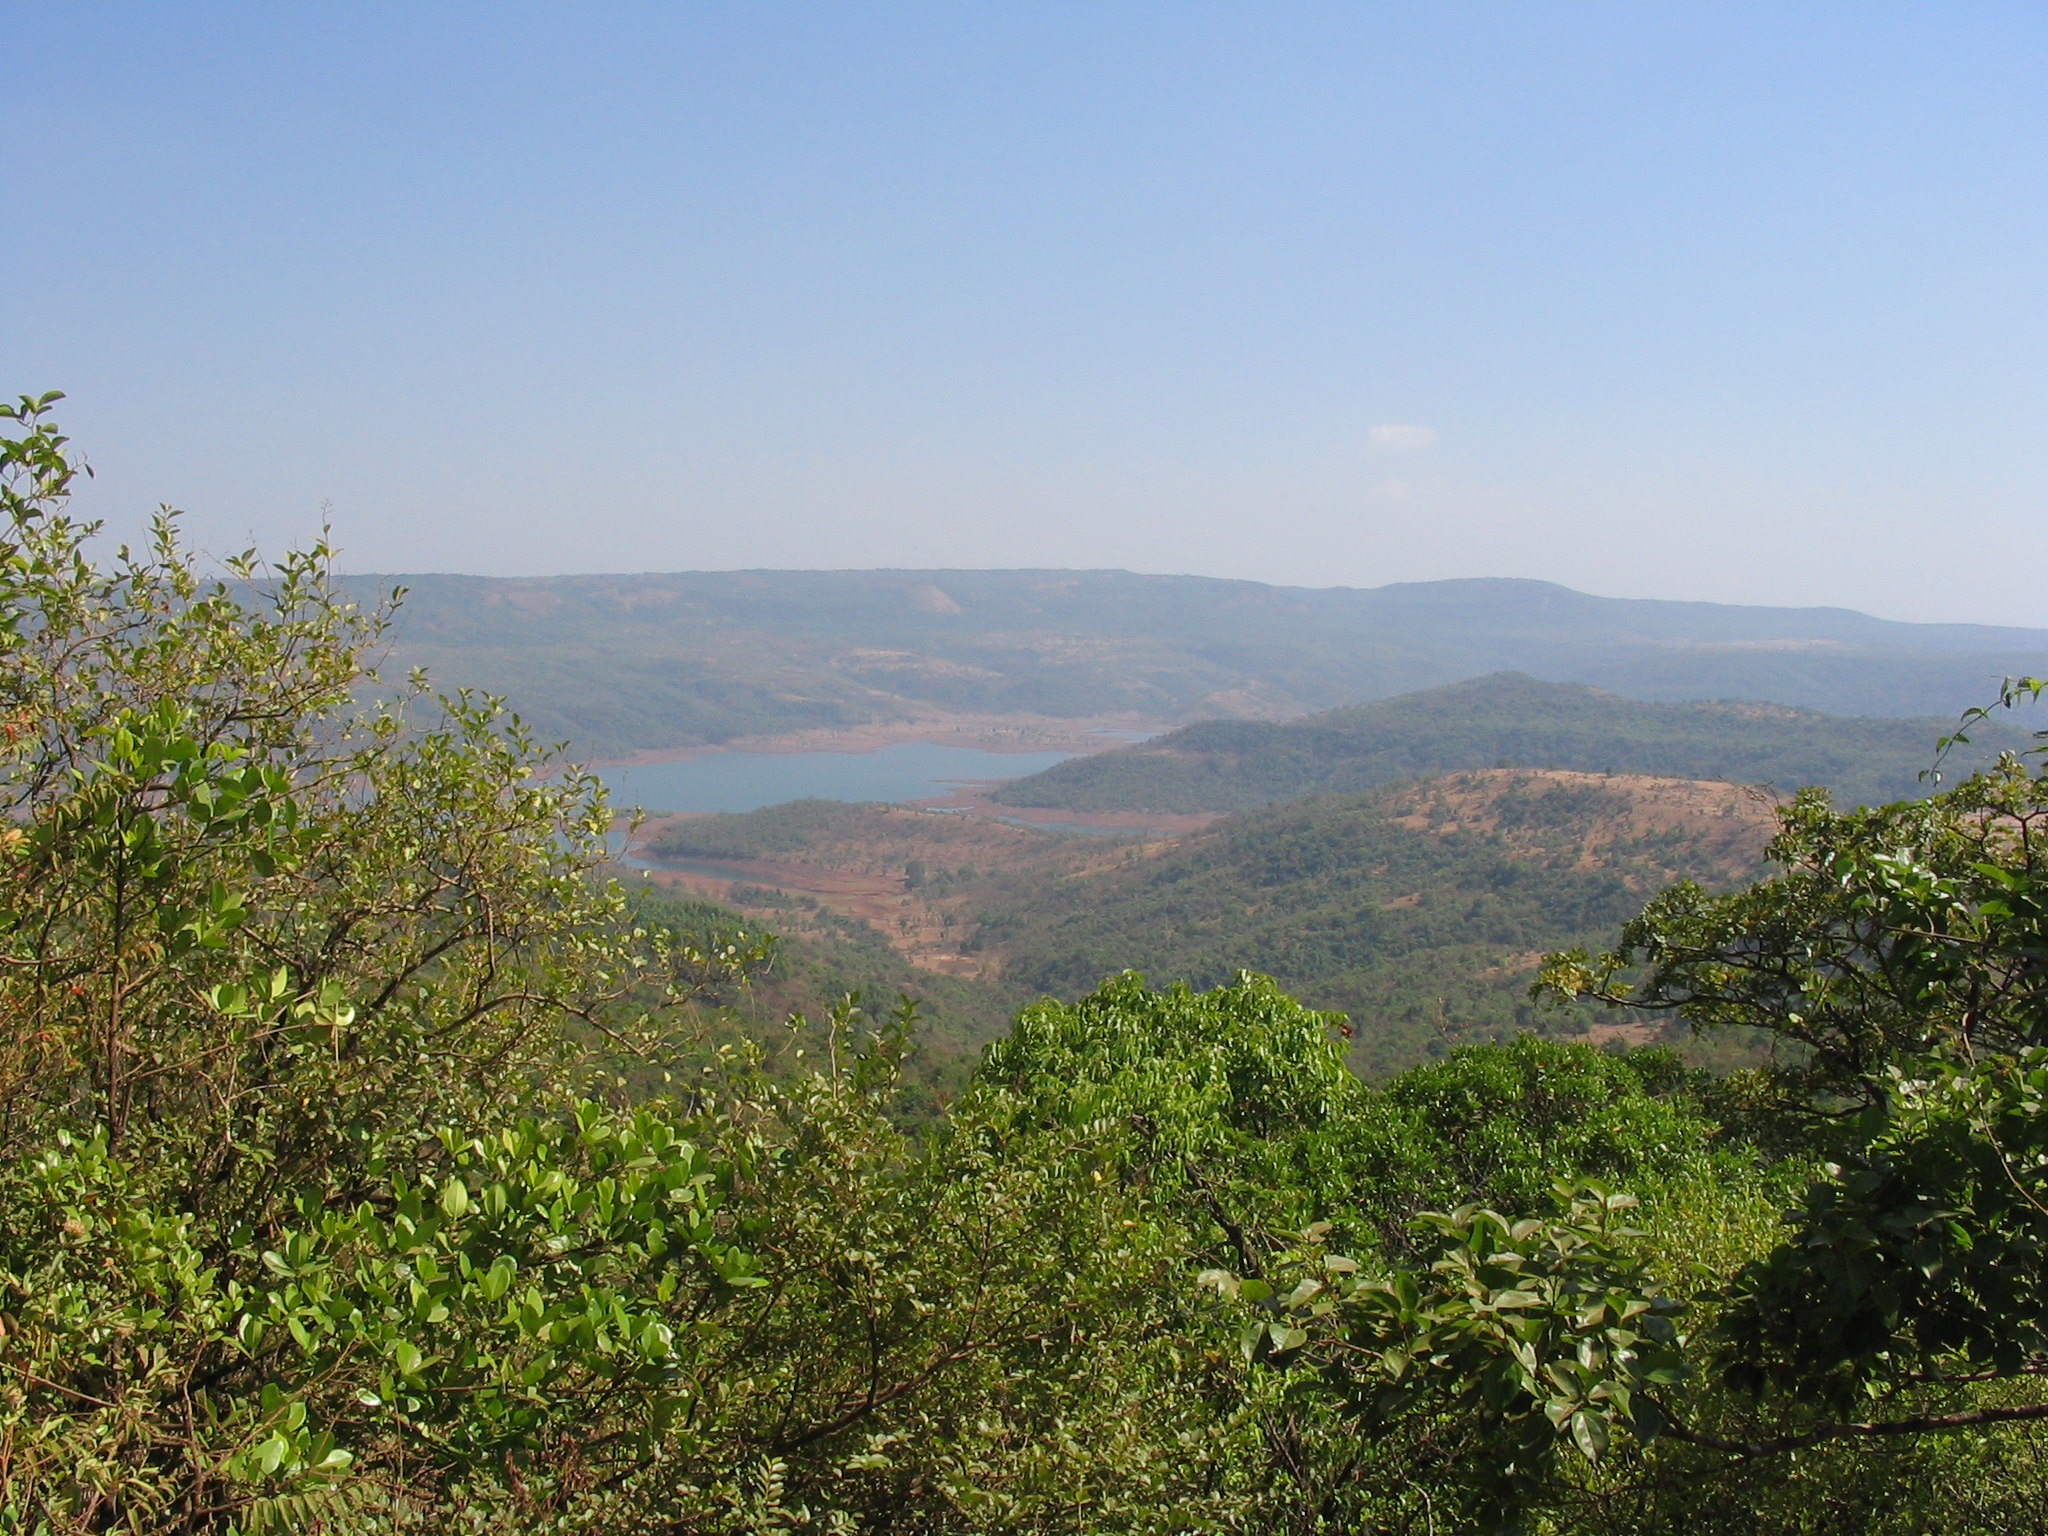 Sightseeing Place To Visit Near Vishalgad Fort-Dajipur Wildlife Sanctuary